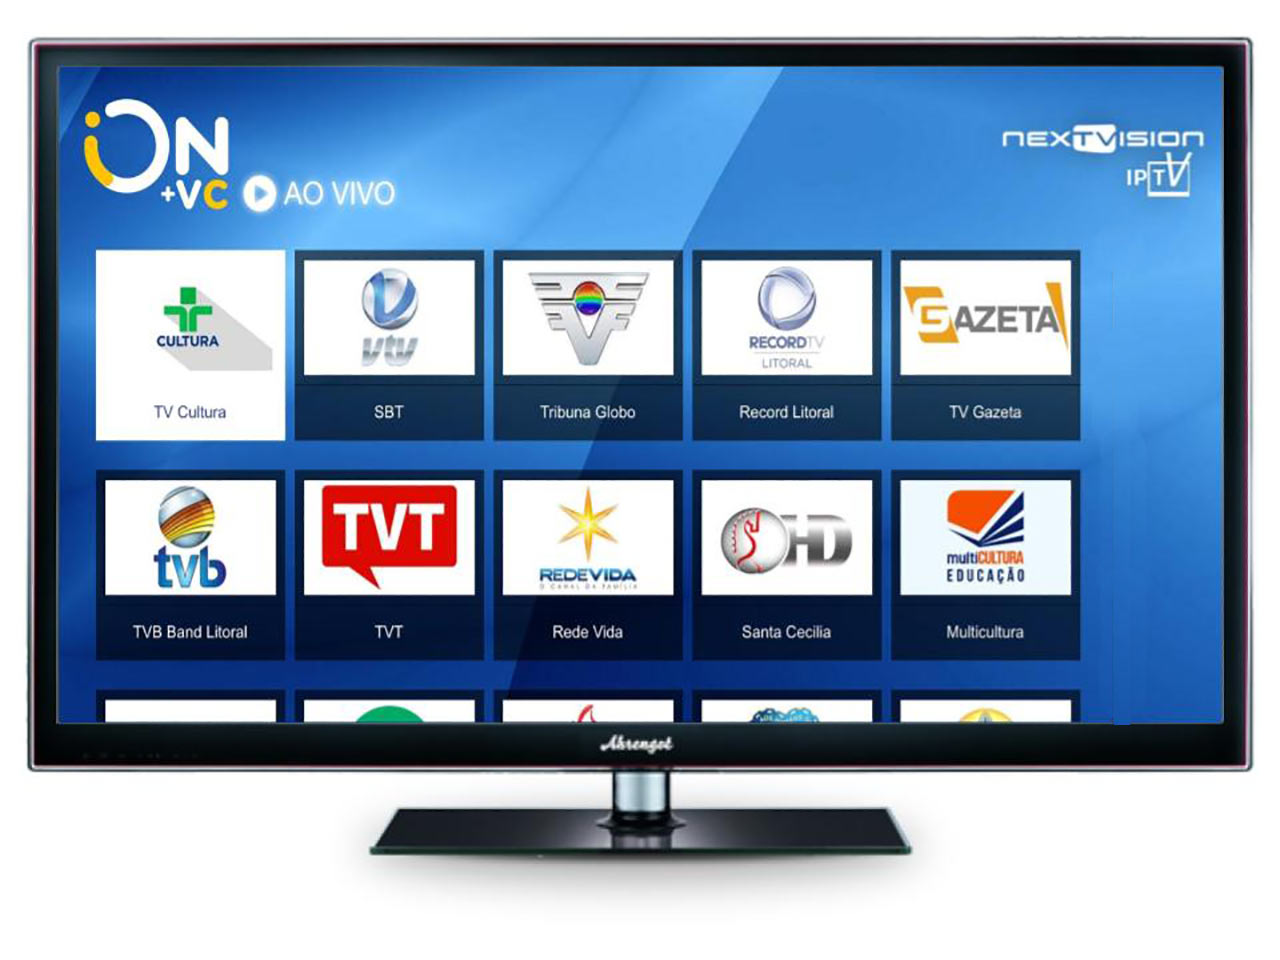 ip tv nextivision